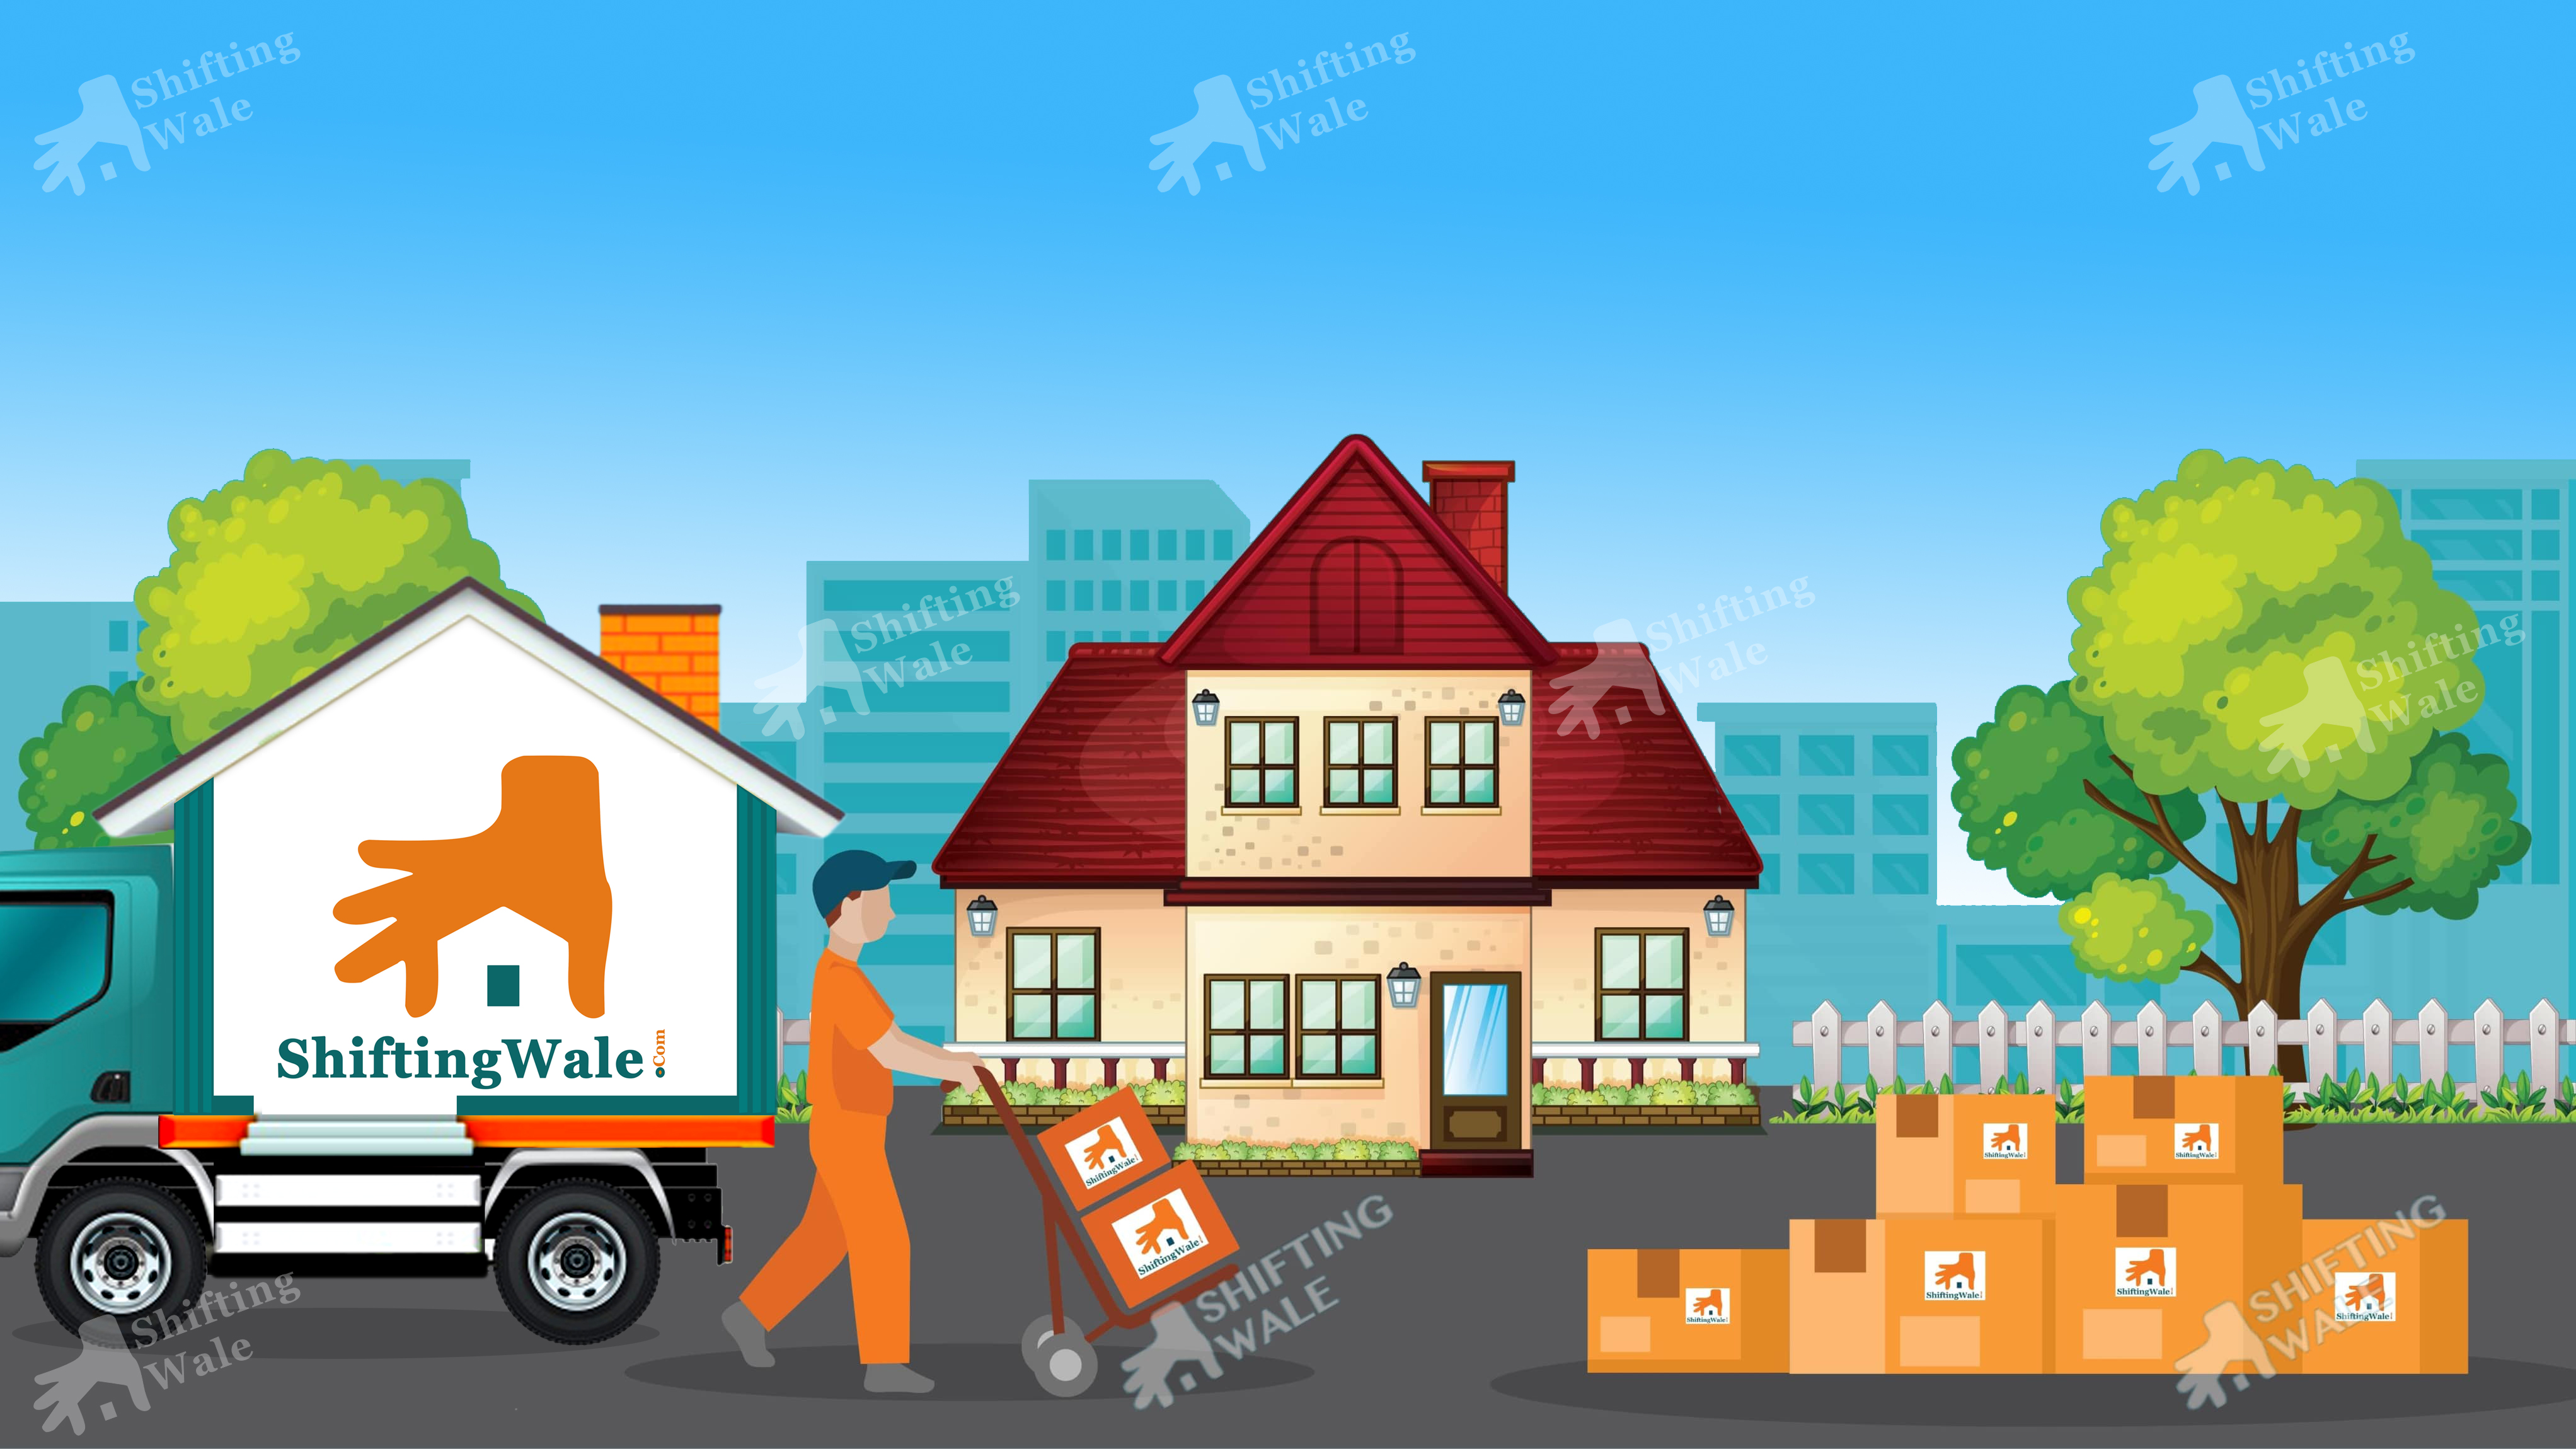 Best Household Goods From Noida Ghaziabad Delhi Greater Noida To Gurgaon Manesar Bhiwadi